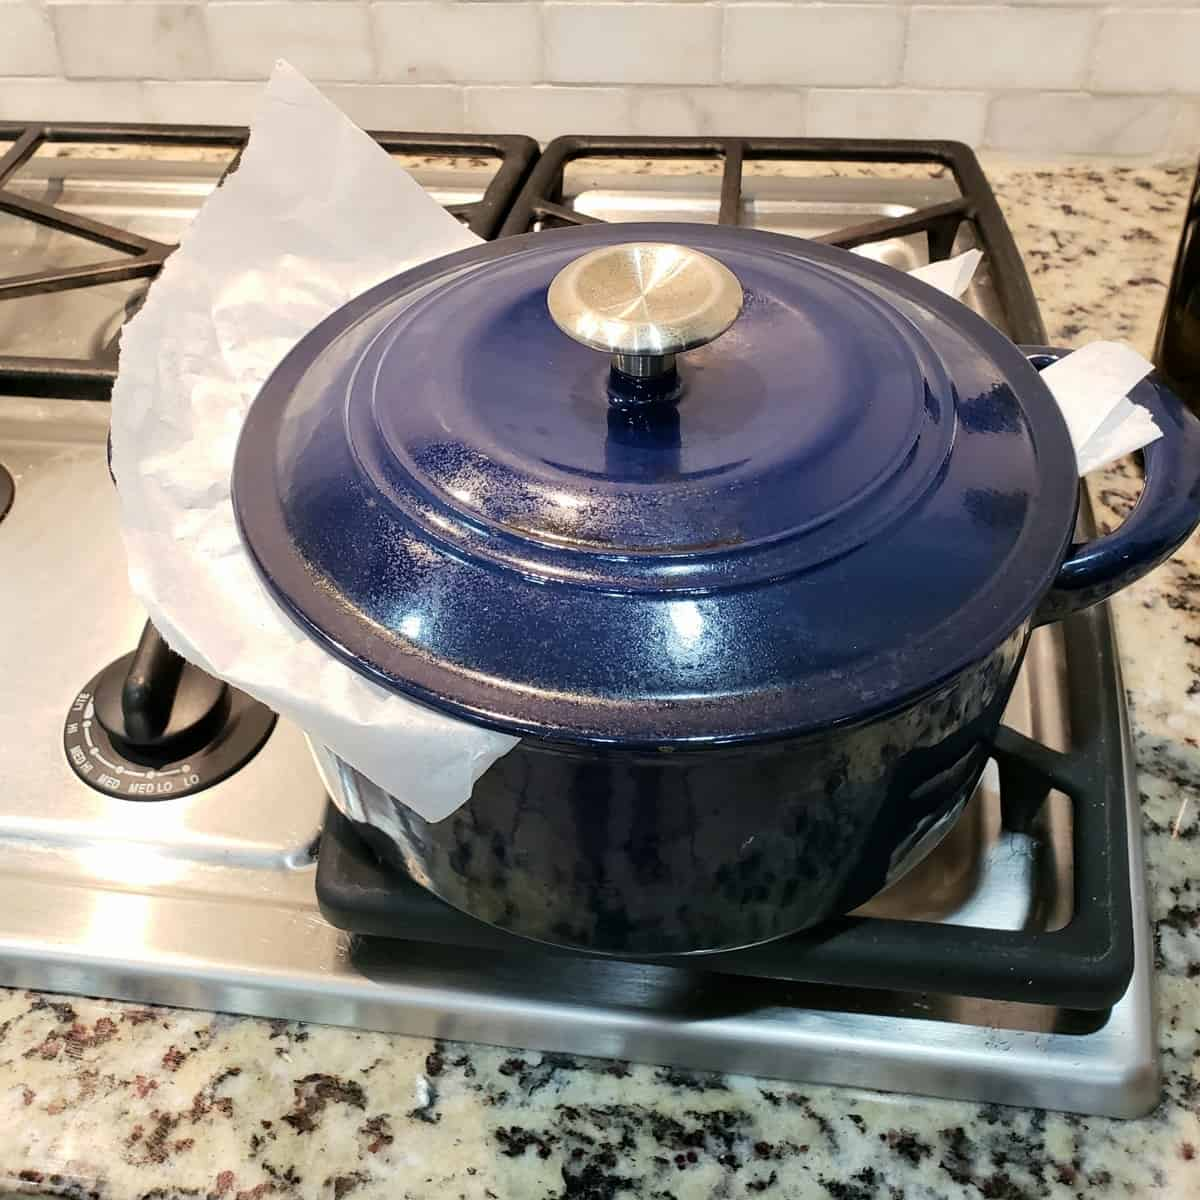 blue cast iron dutch oven on stovetop with parchment sticking out